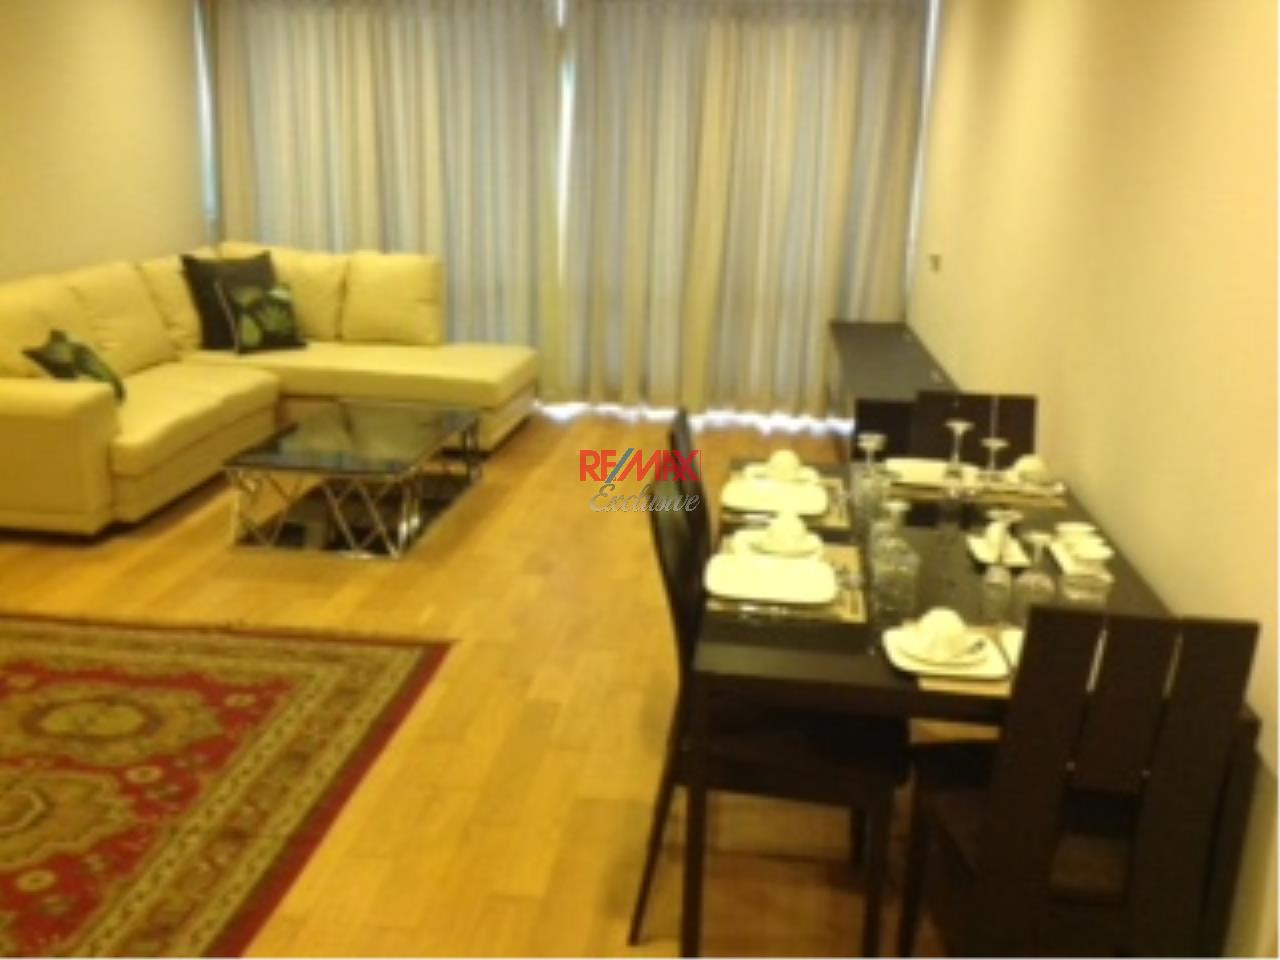 RE/MAX Exclusive Agency's Hyde Condo 2 Bedrooms 113 Sqm., For Rent and Sale!! 1